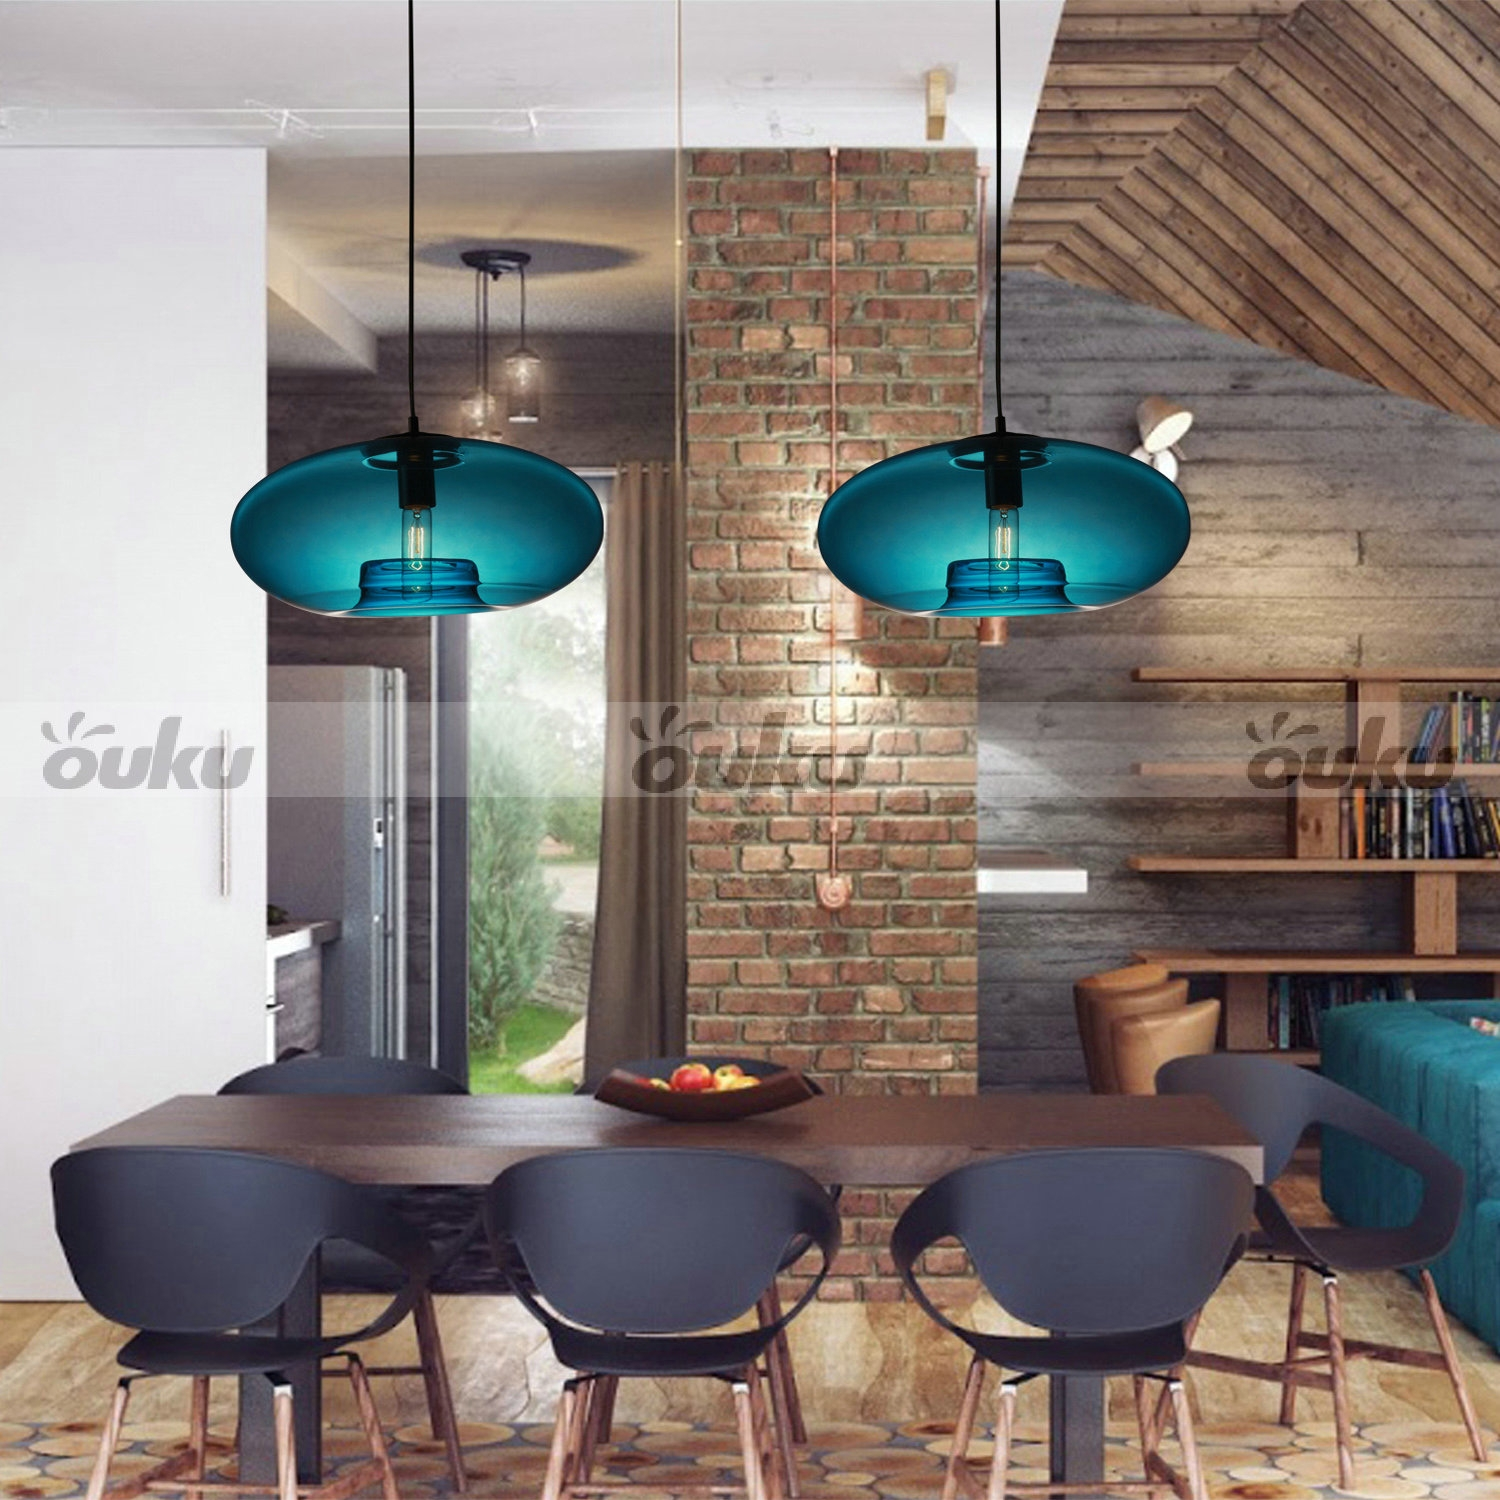 Modern Retro Vintage Ceiling Lamp Chandelier Lighting Fixture Within Turquoise Bubble Chandeliers (Image 21 of 25)